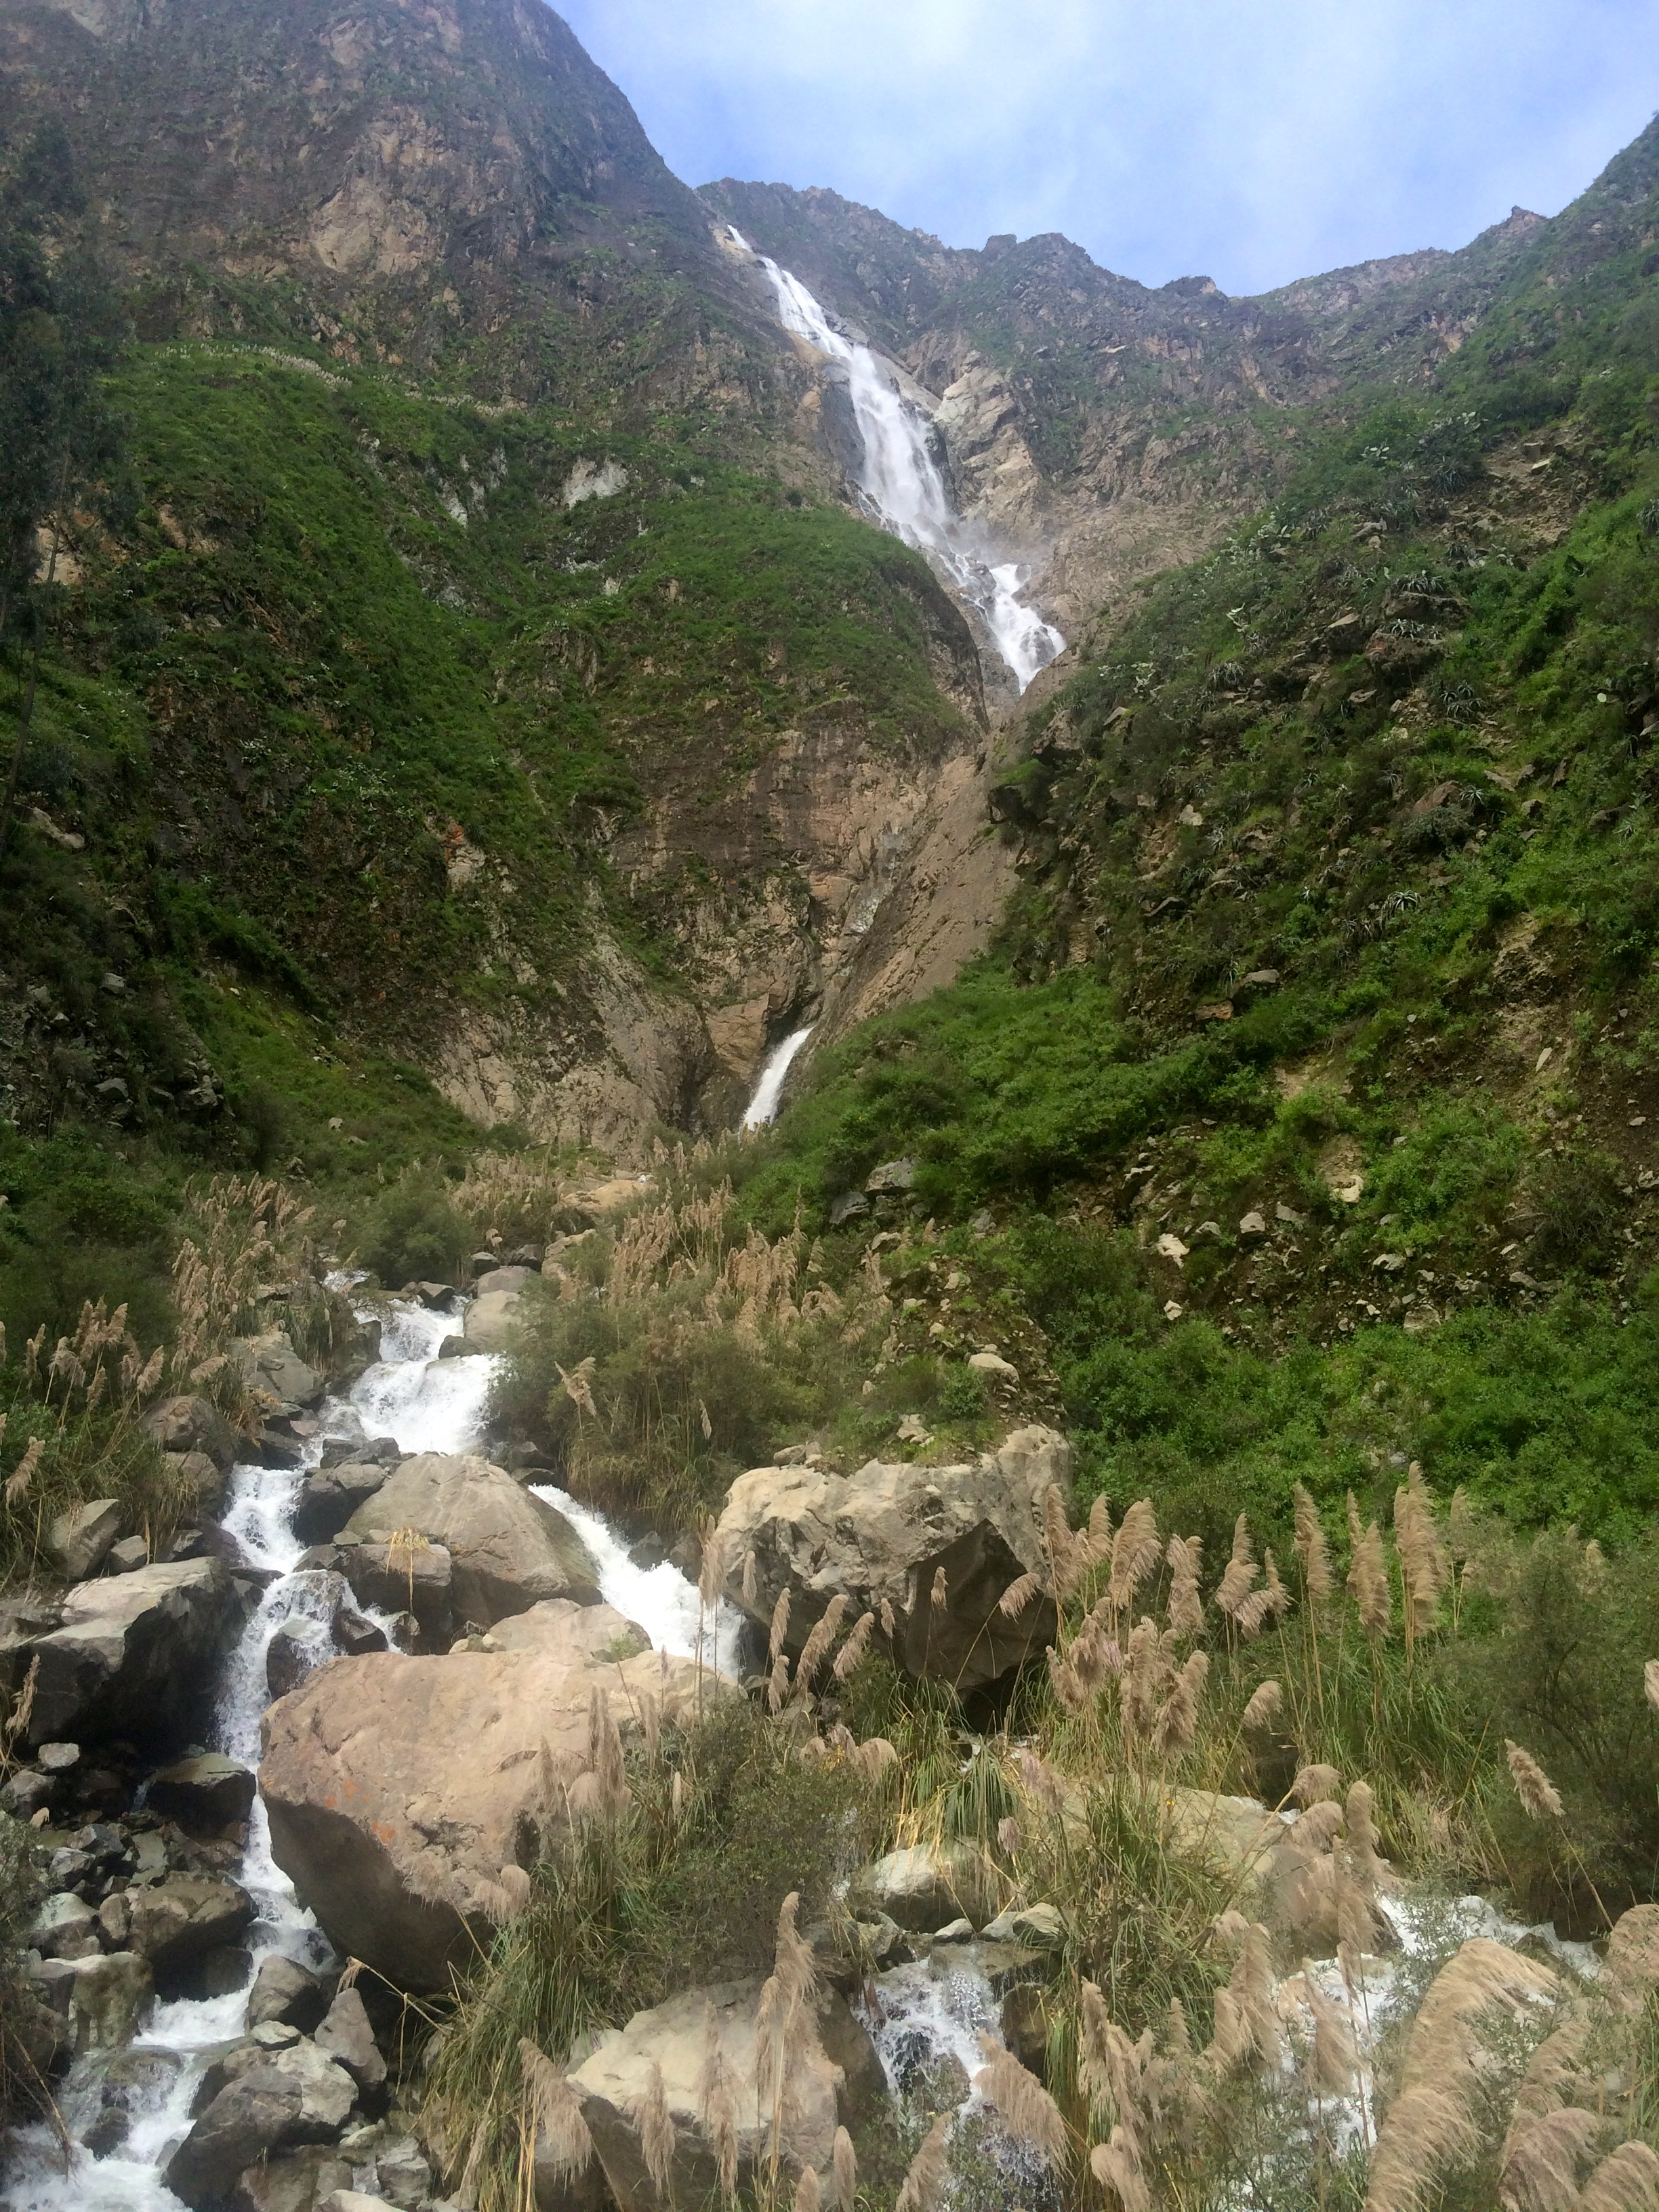 El fure waterfall